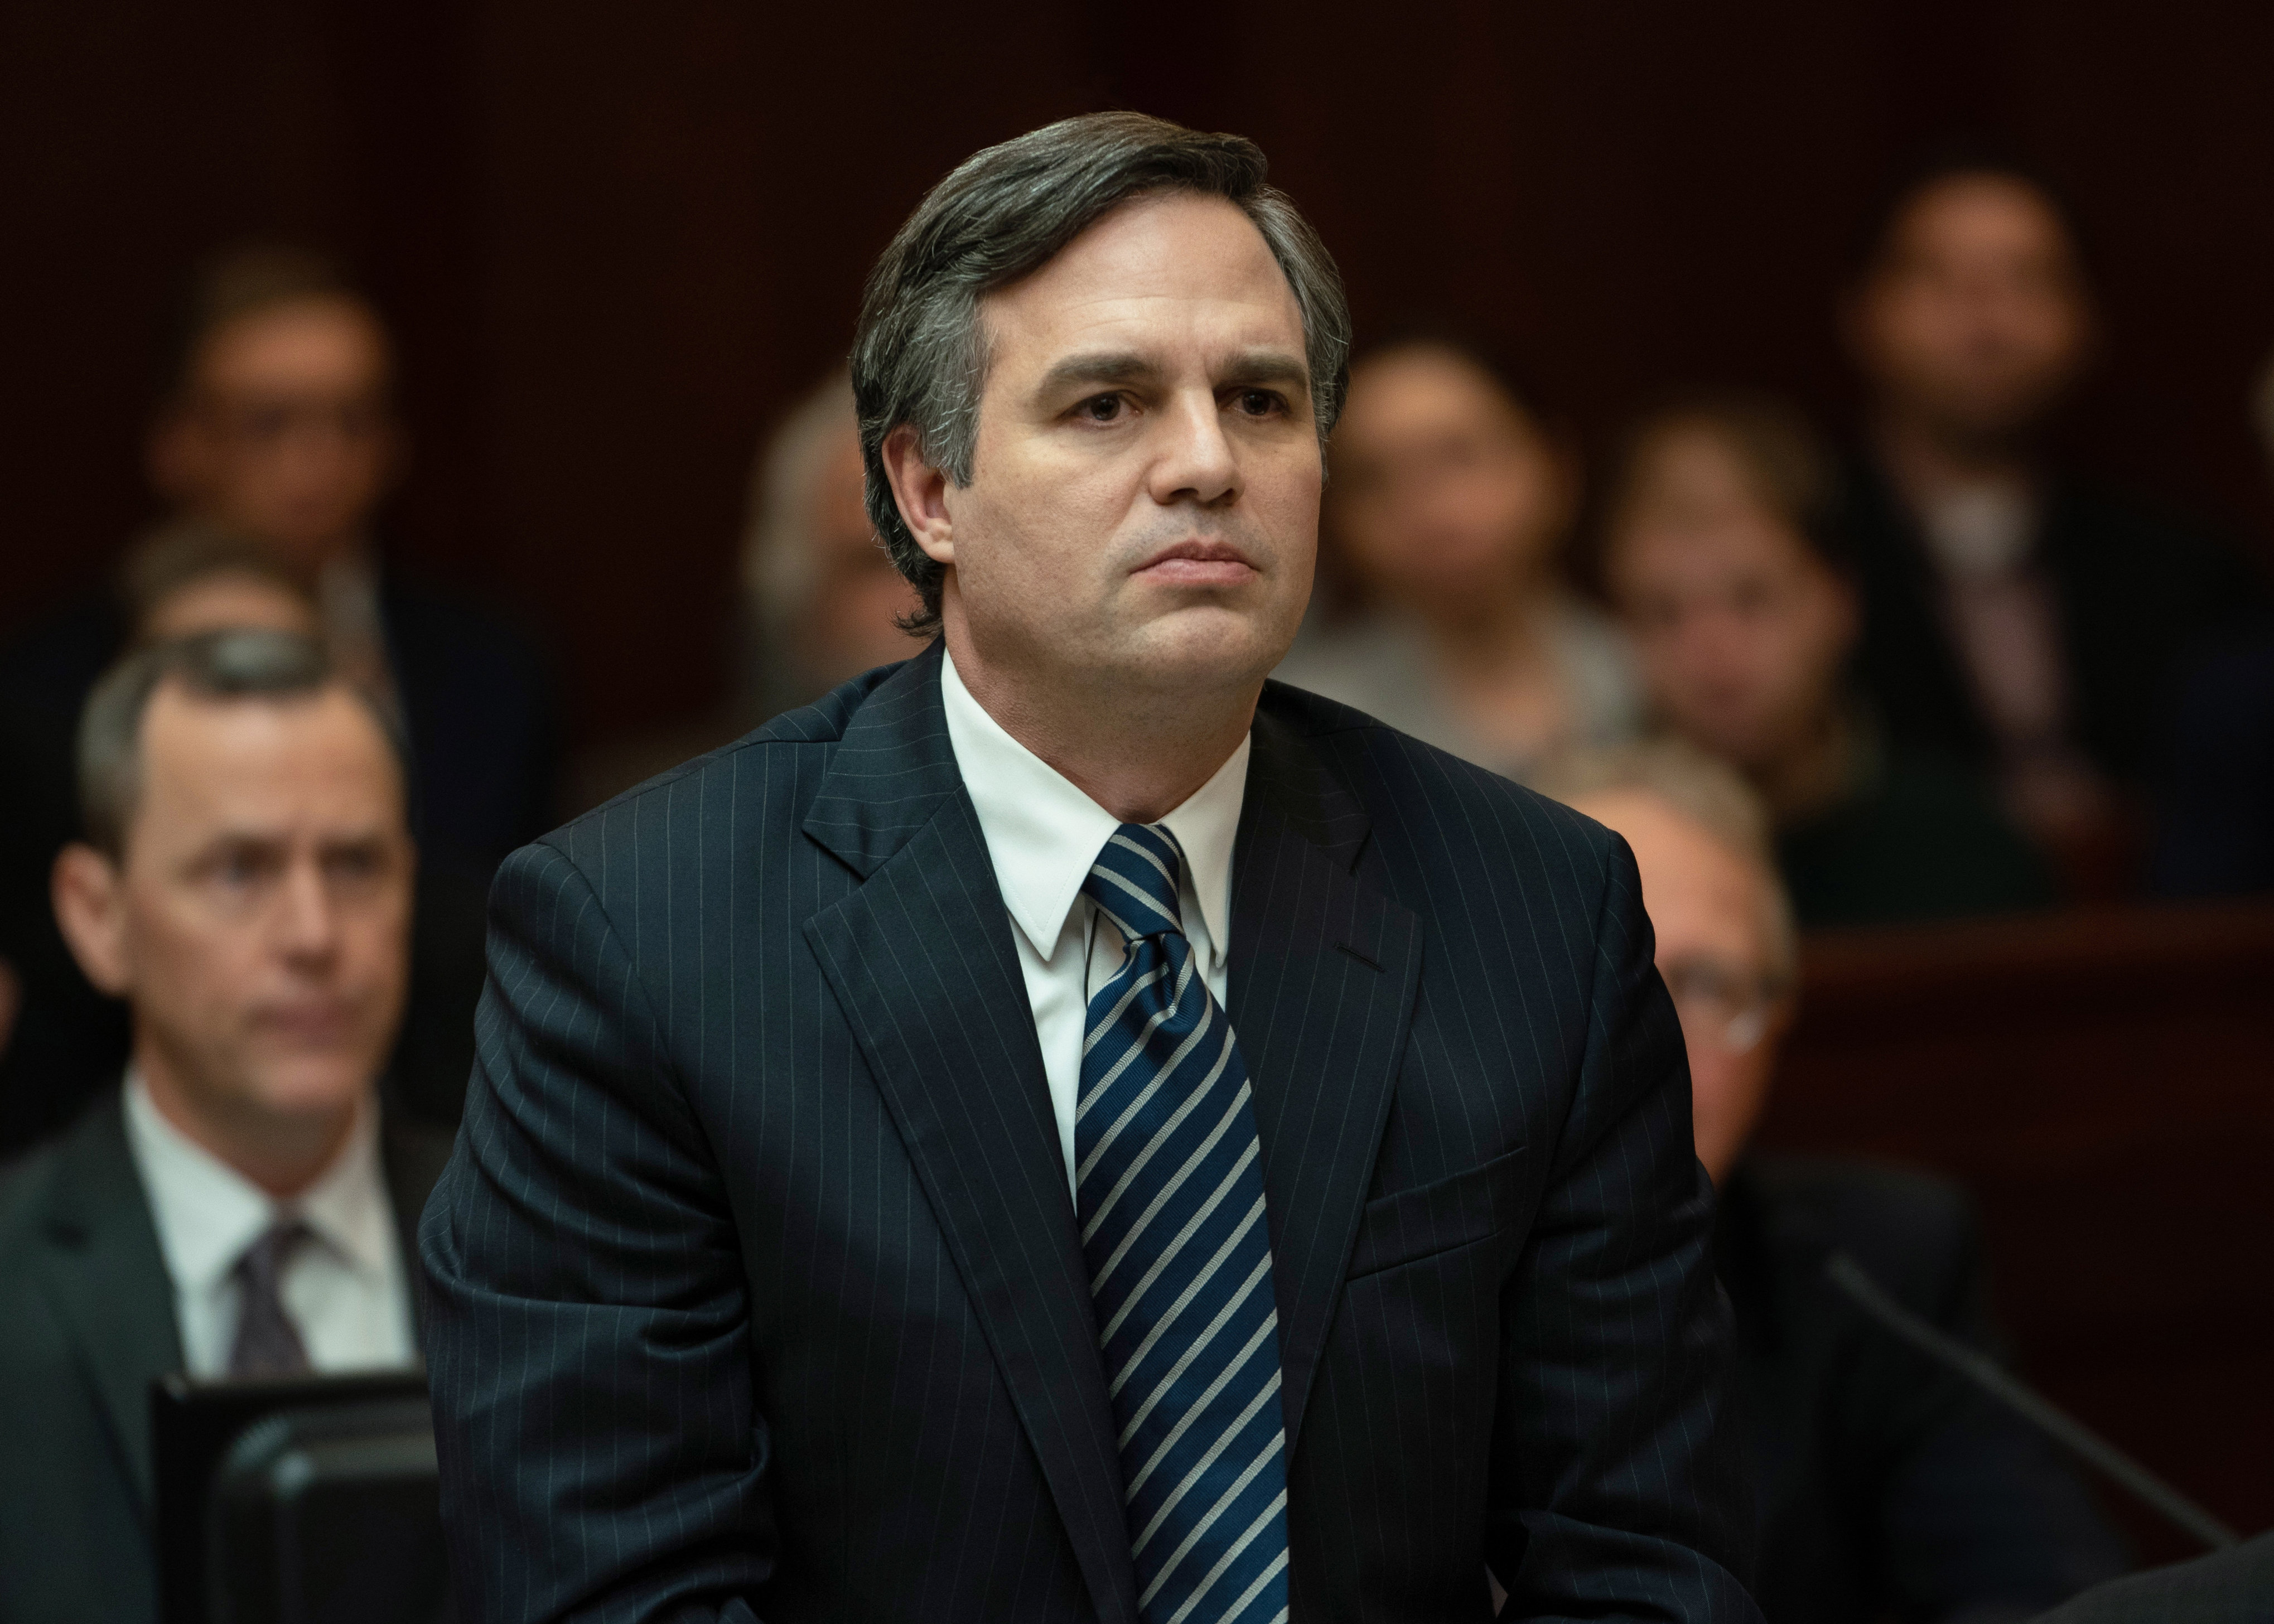 Mark Ruffalo playing a lawyer in a courtroom in the movie Dark Waters.